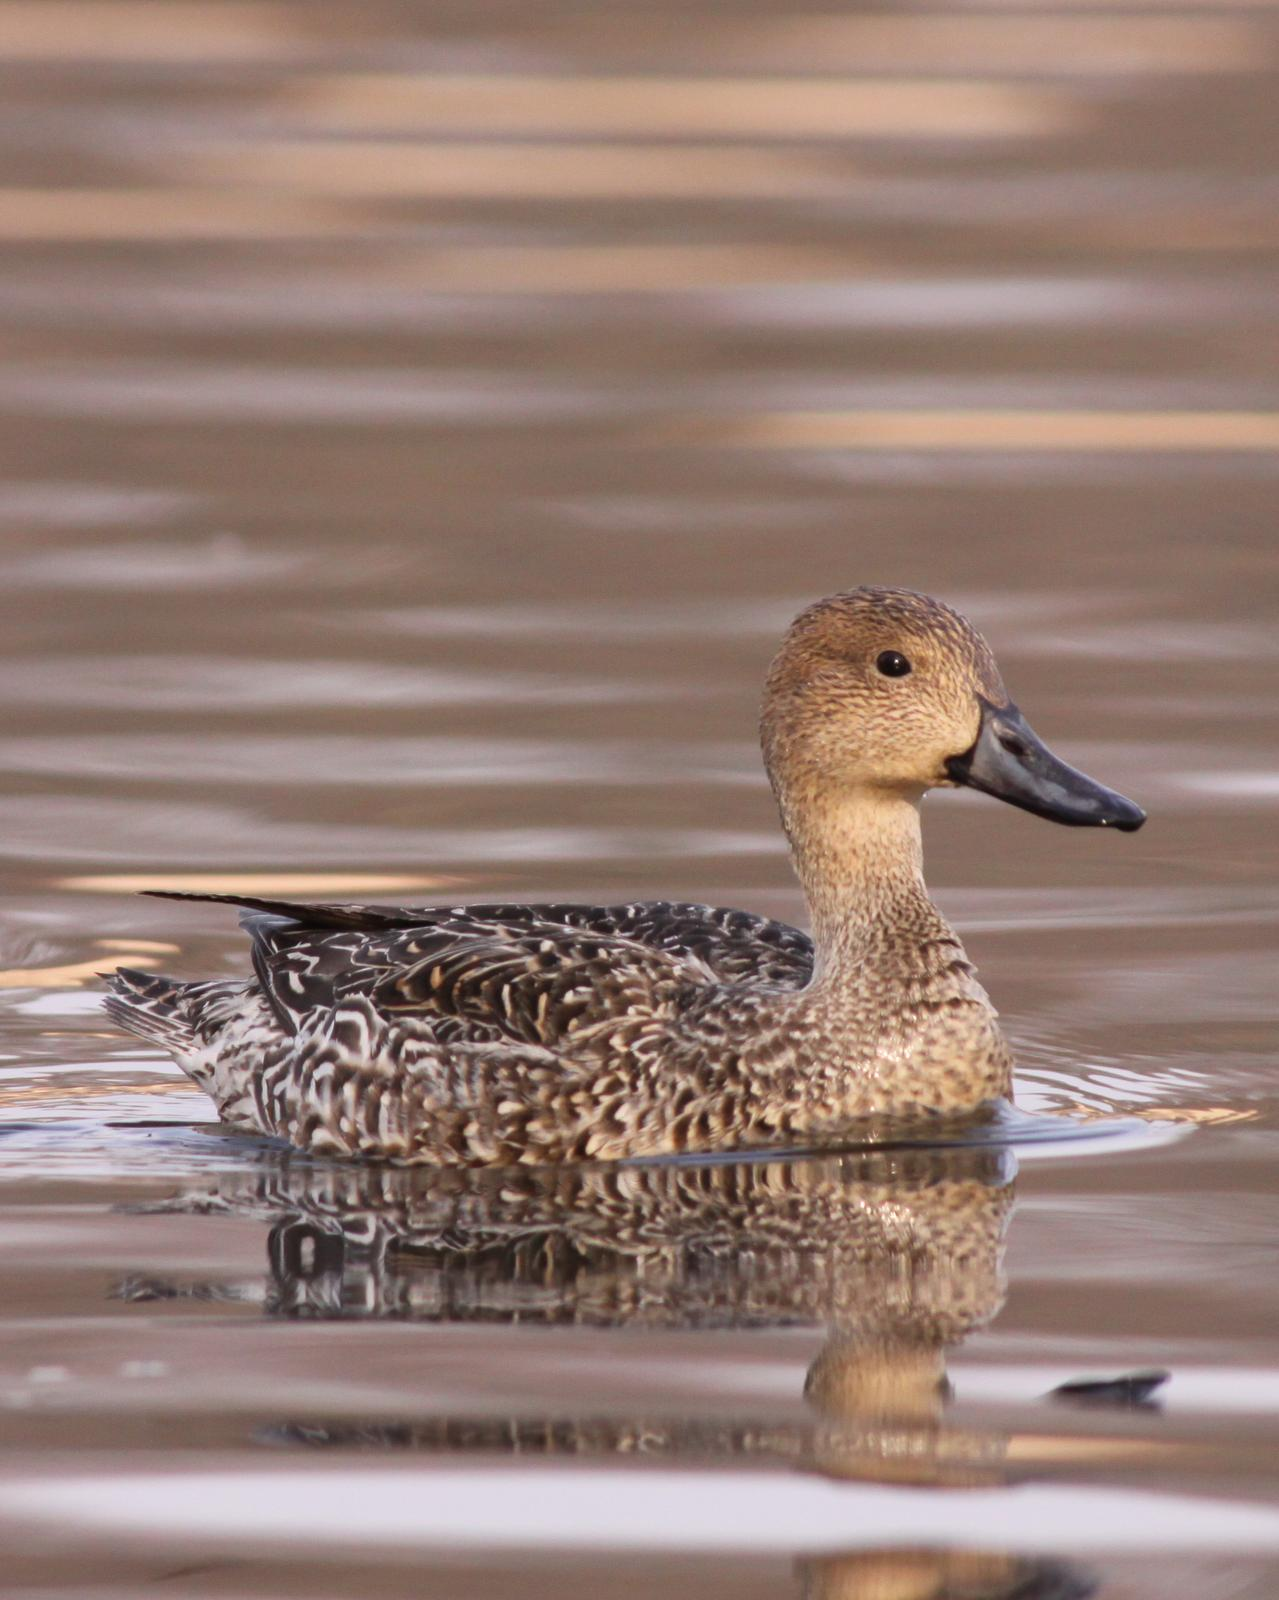 Northern Pintail Photo by Kasia  Ganderska Someya